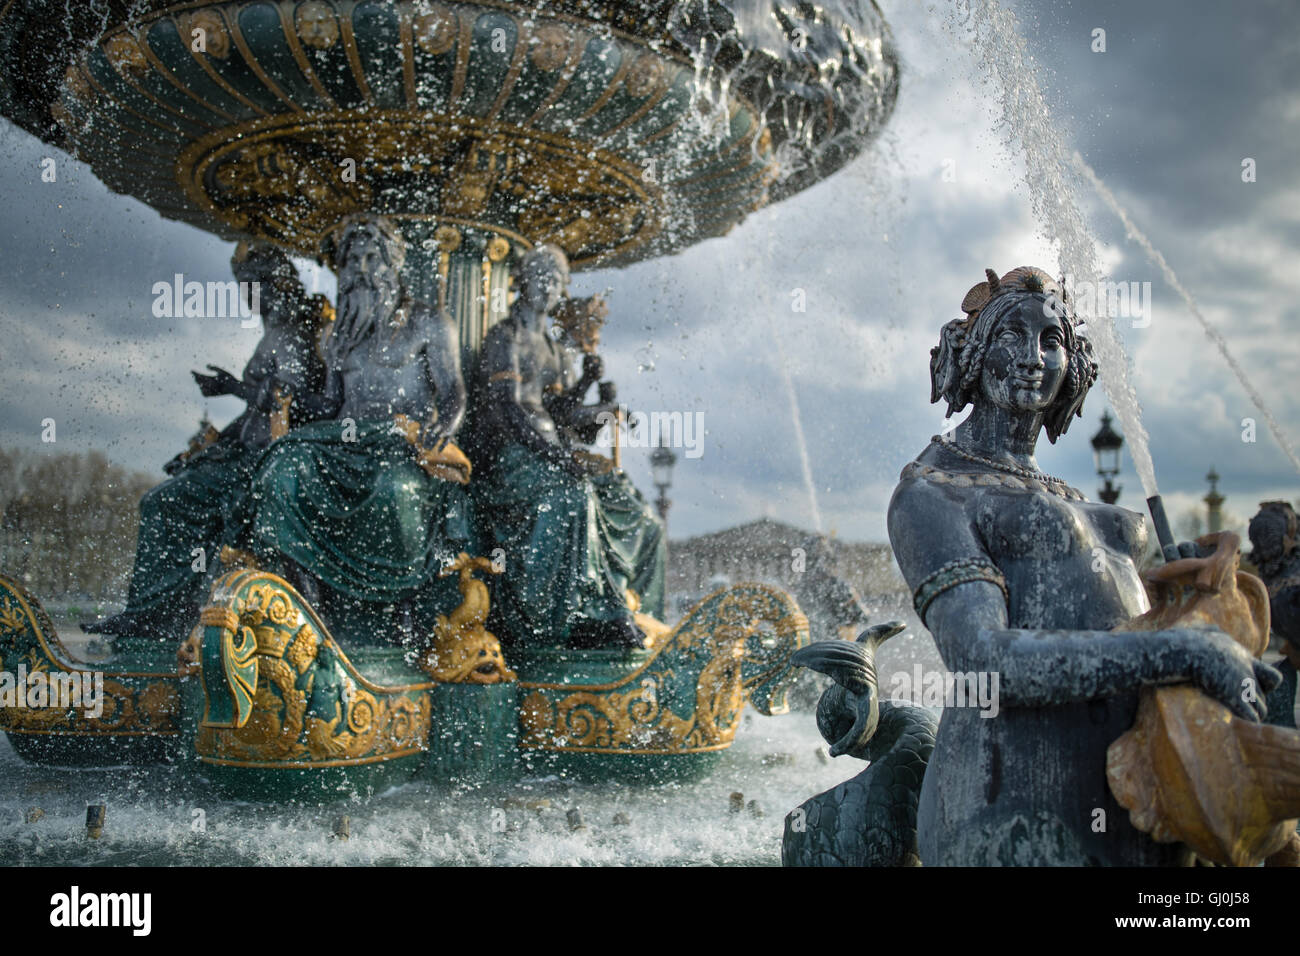 Les fontaines de la Place de la Concorde, Paris, France Photo Stock